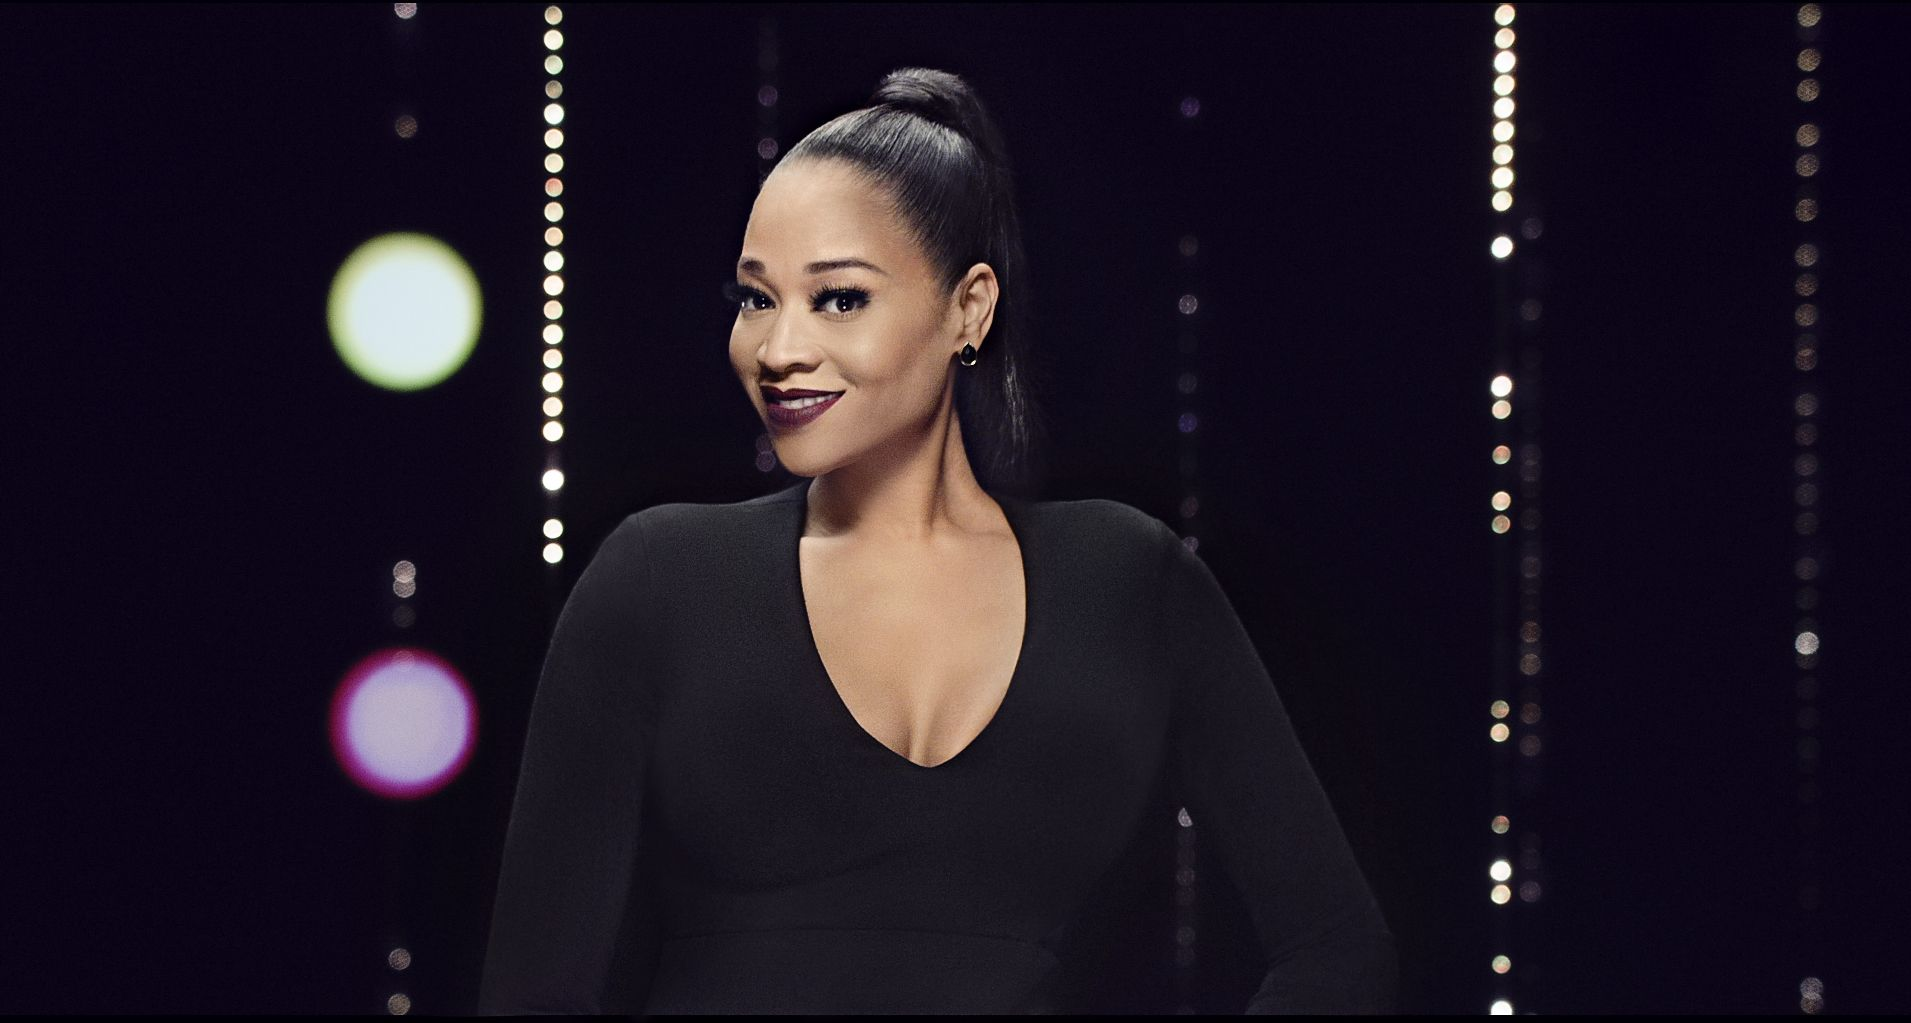 Mimi Faust Makes Balancing Motherhood Relationships And New Business Ventures Look Easily She Makes A Point To Han Hip Hop Atlanta Mimi Faust Love N Hip Hop